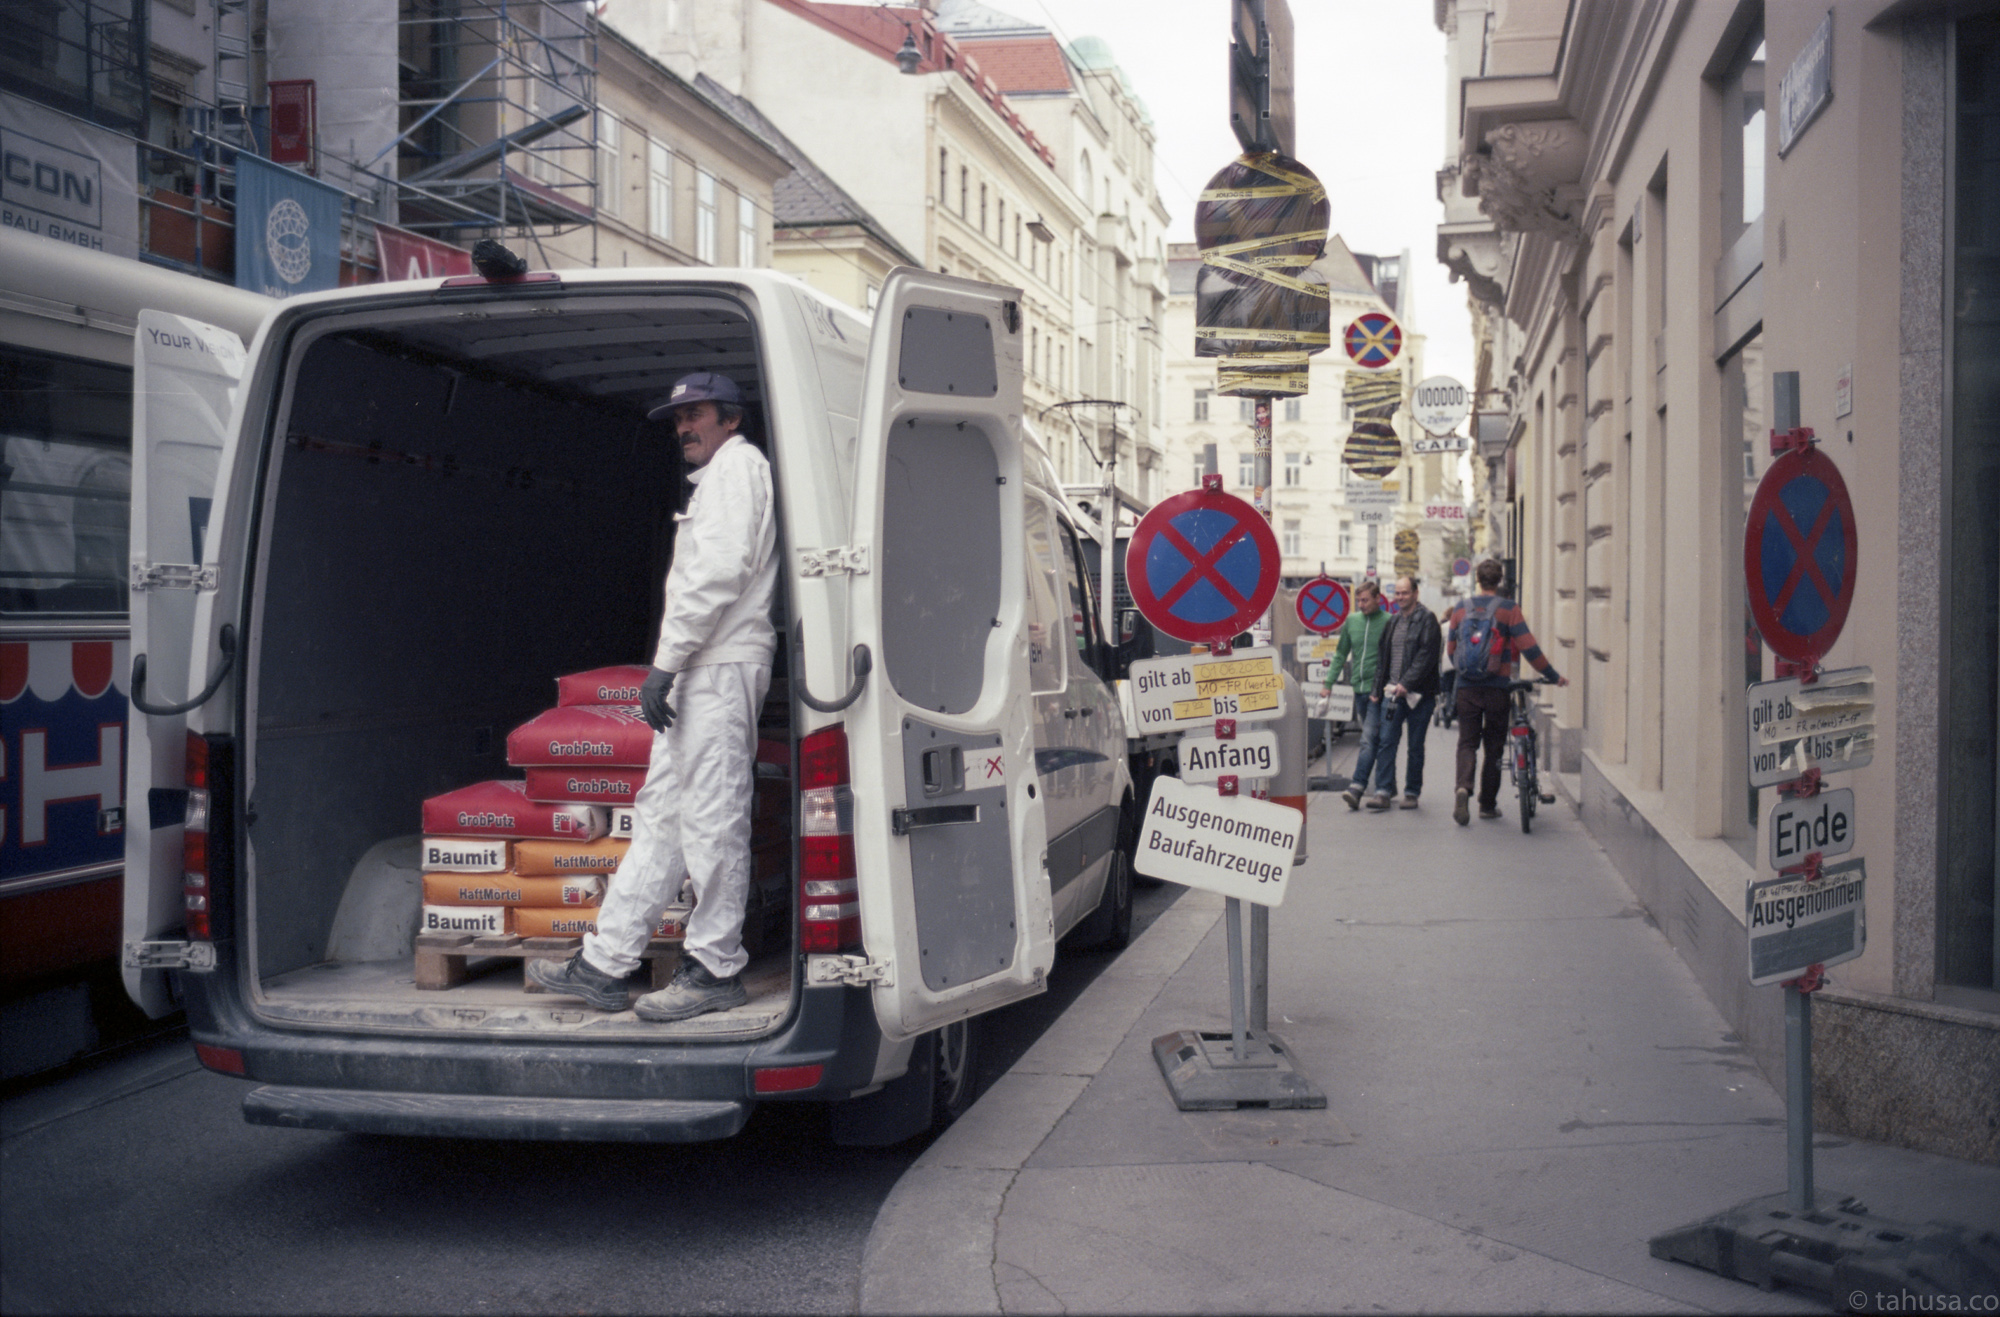 roaming-in-the-street-in-vienna-people-loading-stocks-and-materials-Austria-travel-photography-using-ektar-100-kodak-and-summicron-35mm-f2-8elements-v1-leica-film